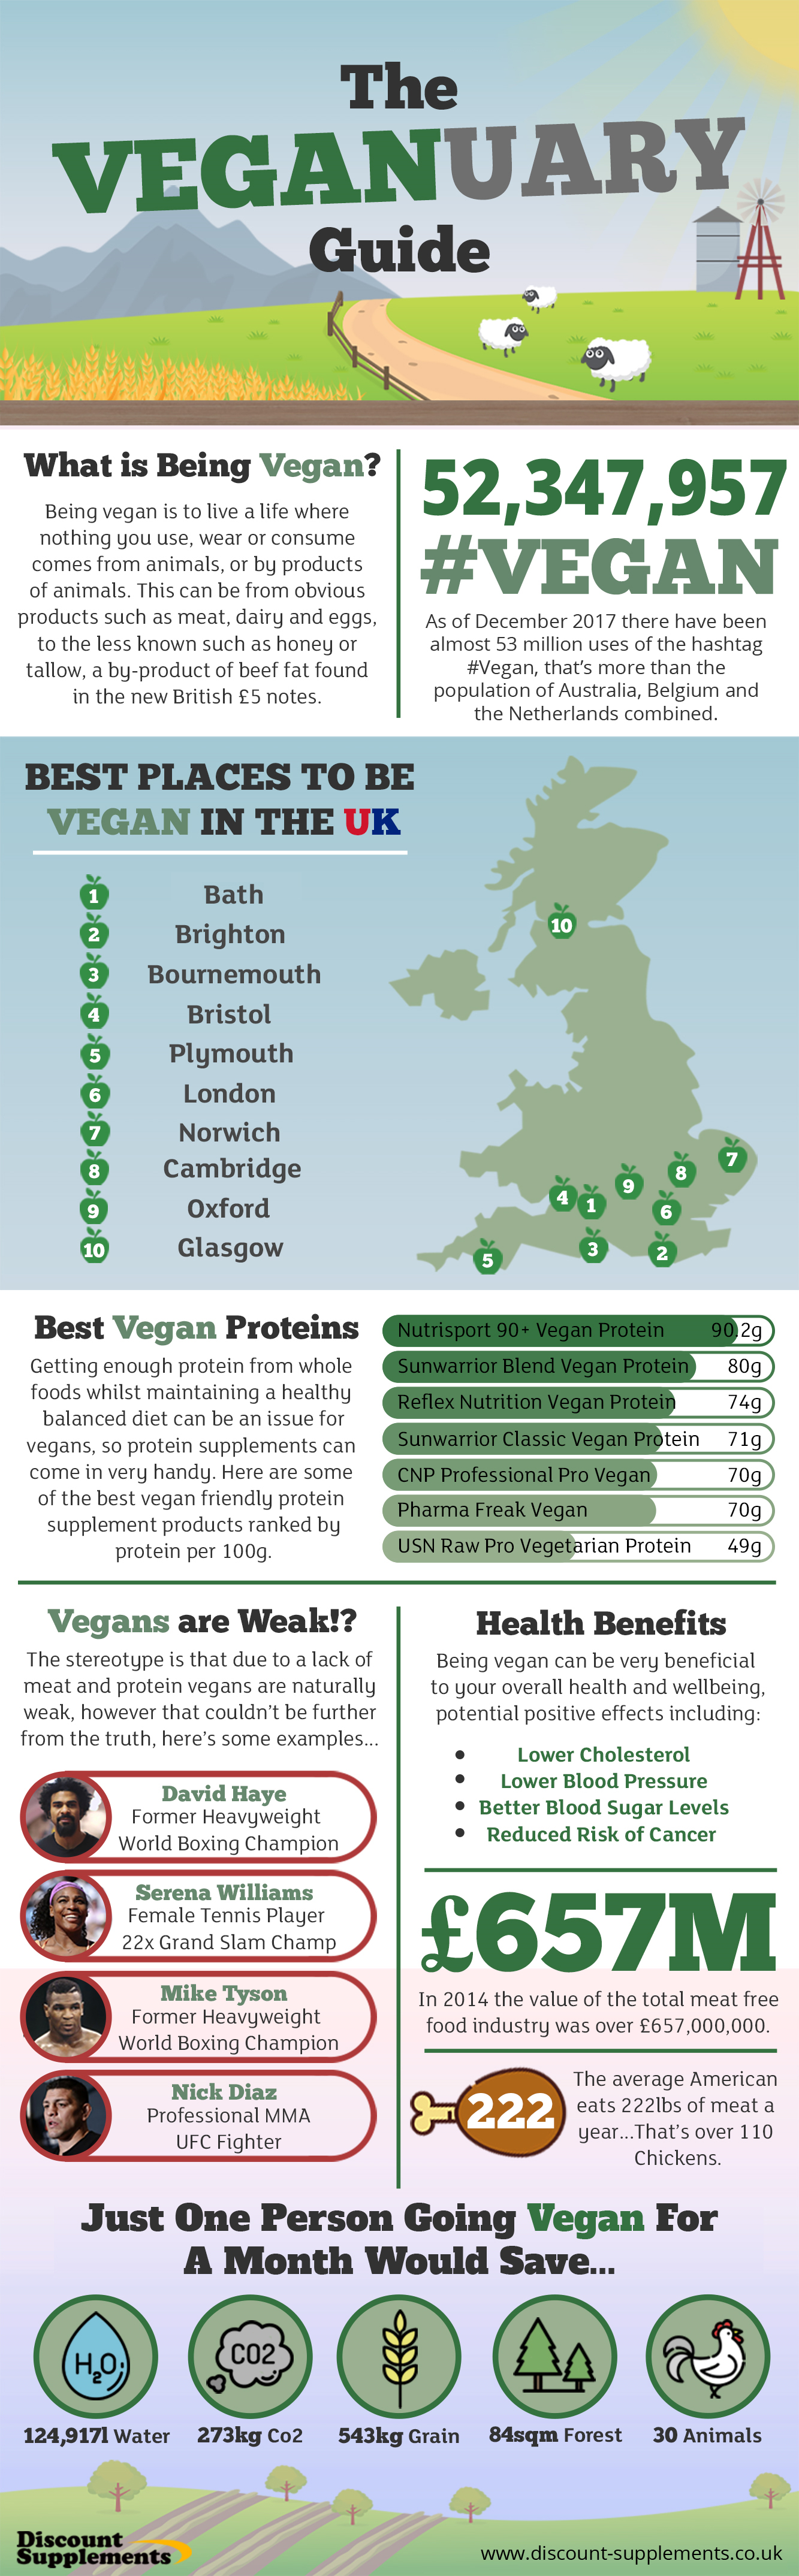 A post showing Information about Veganuary